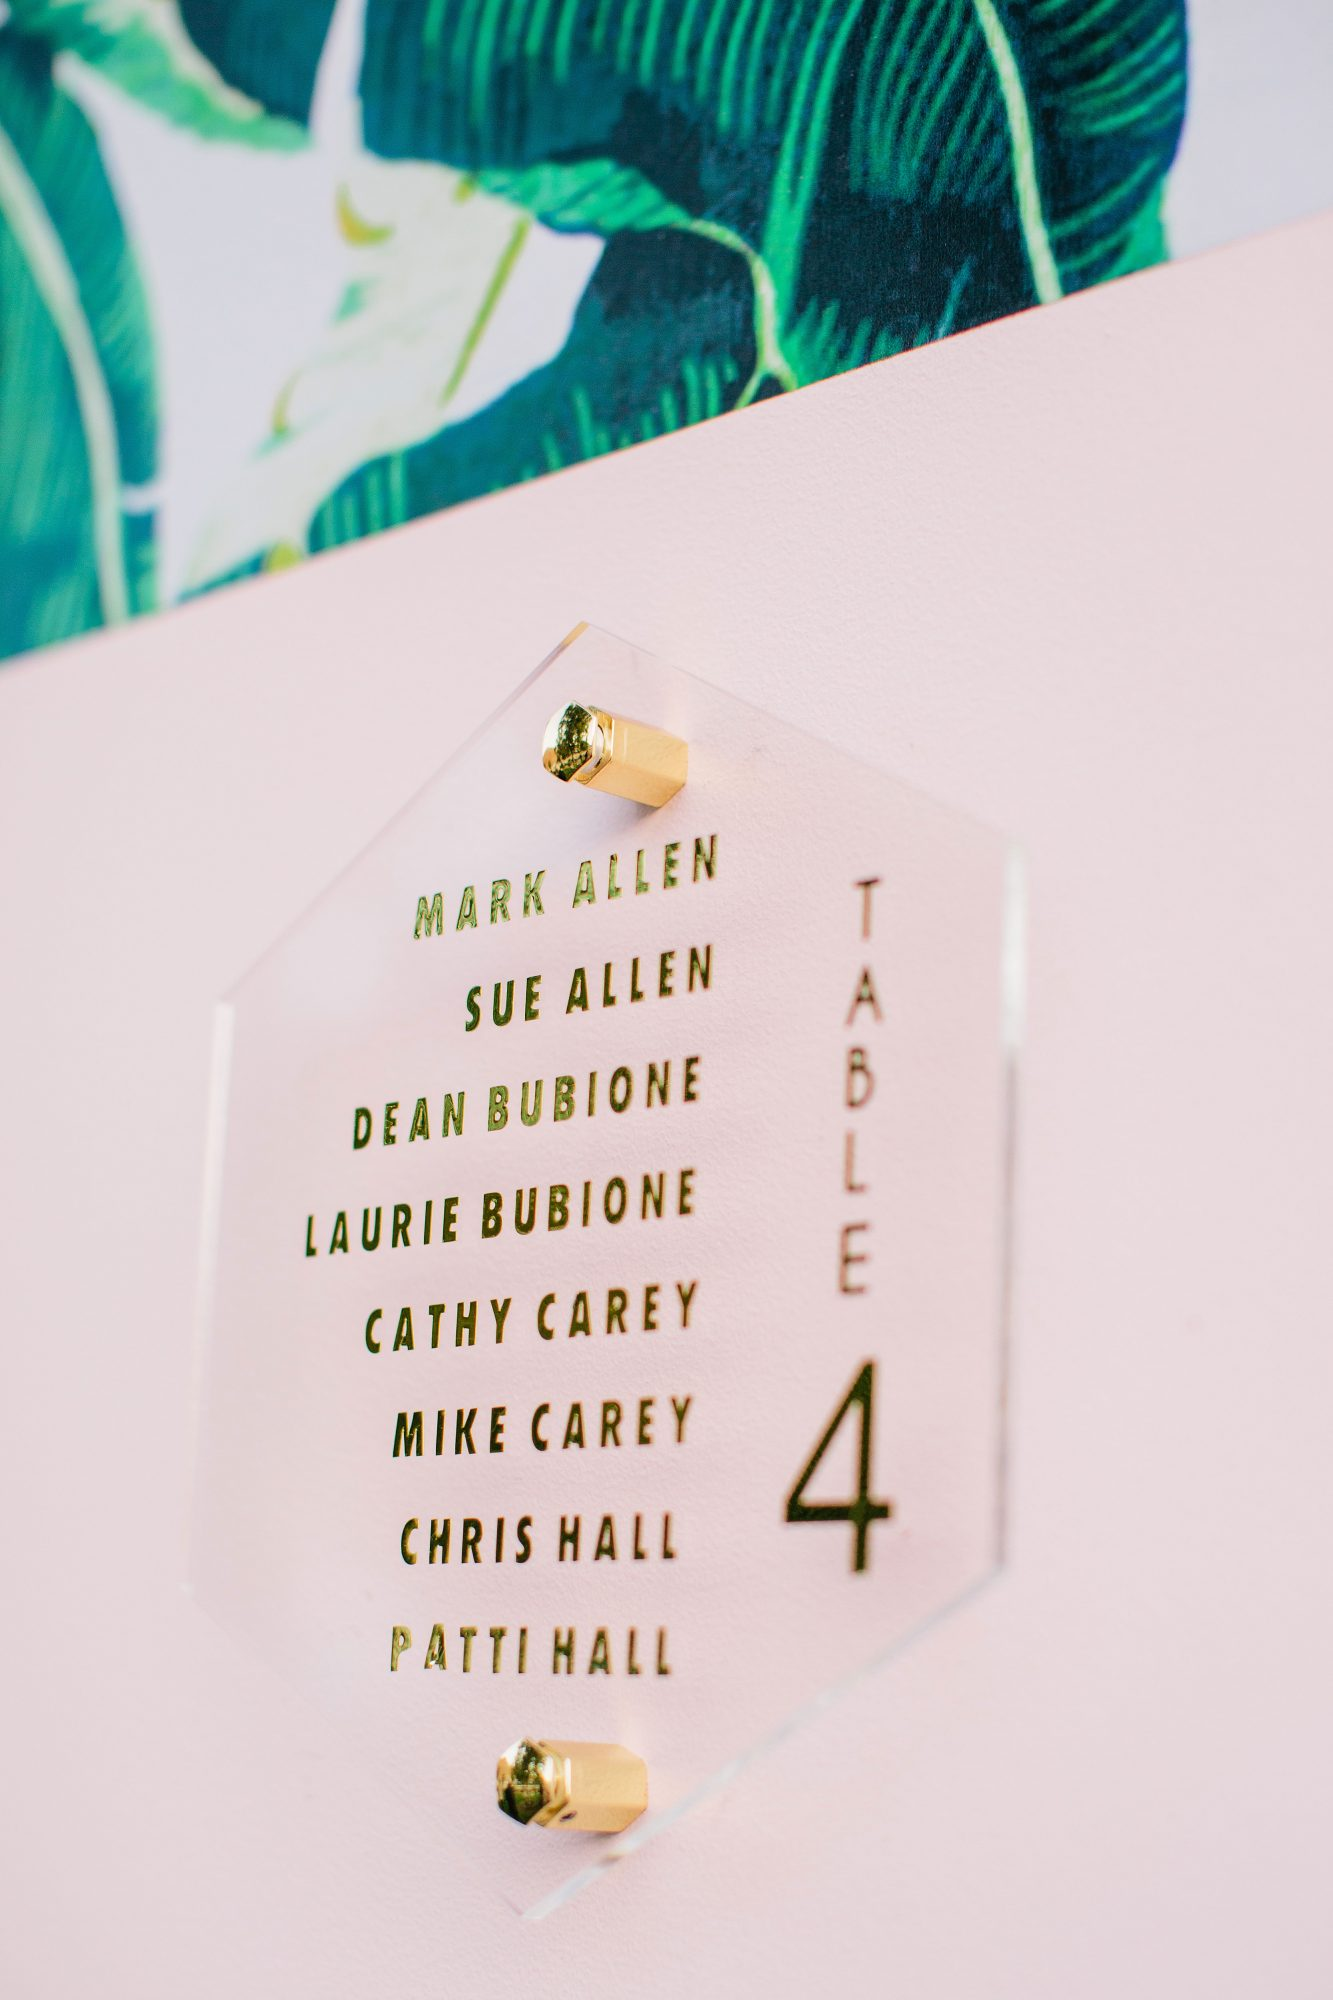 stephanie jared wedding poolside seating chart closeup